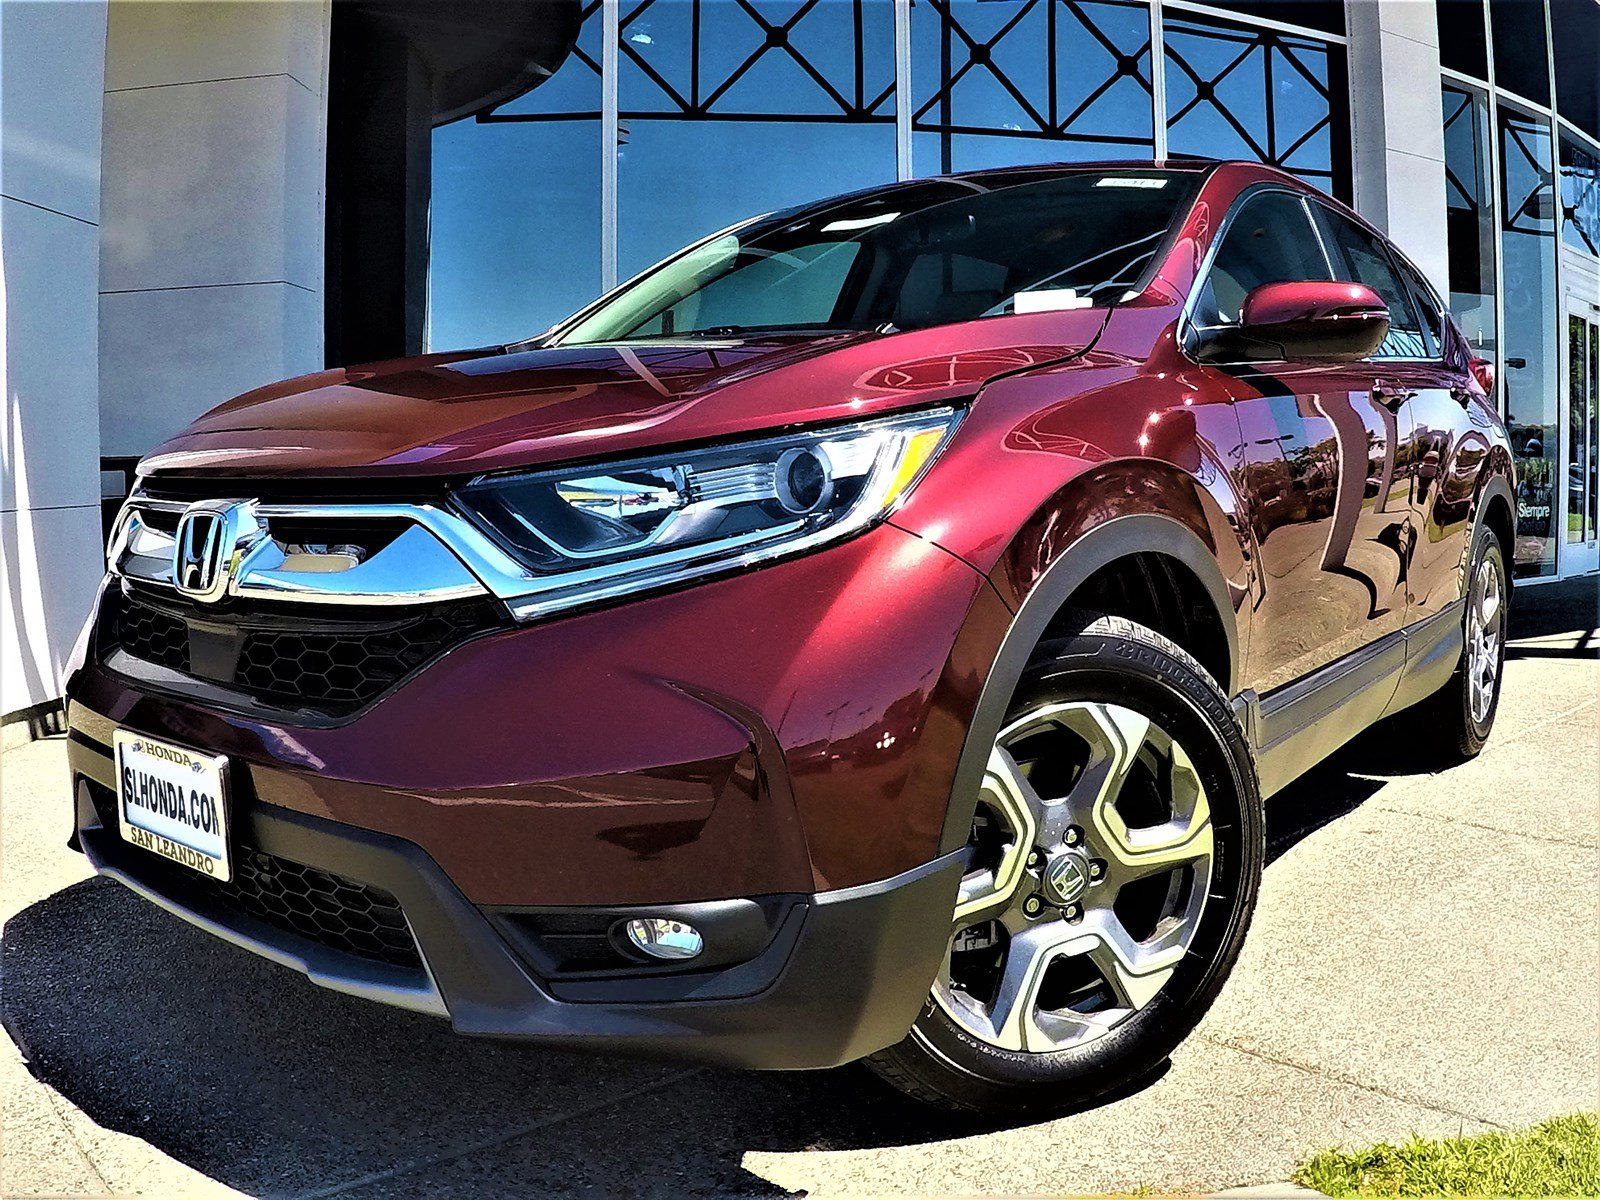 update autos drive first of touring crv cr honda elegant review lovely interior options v car